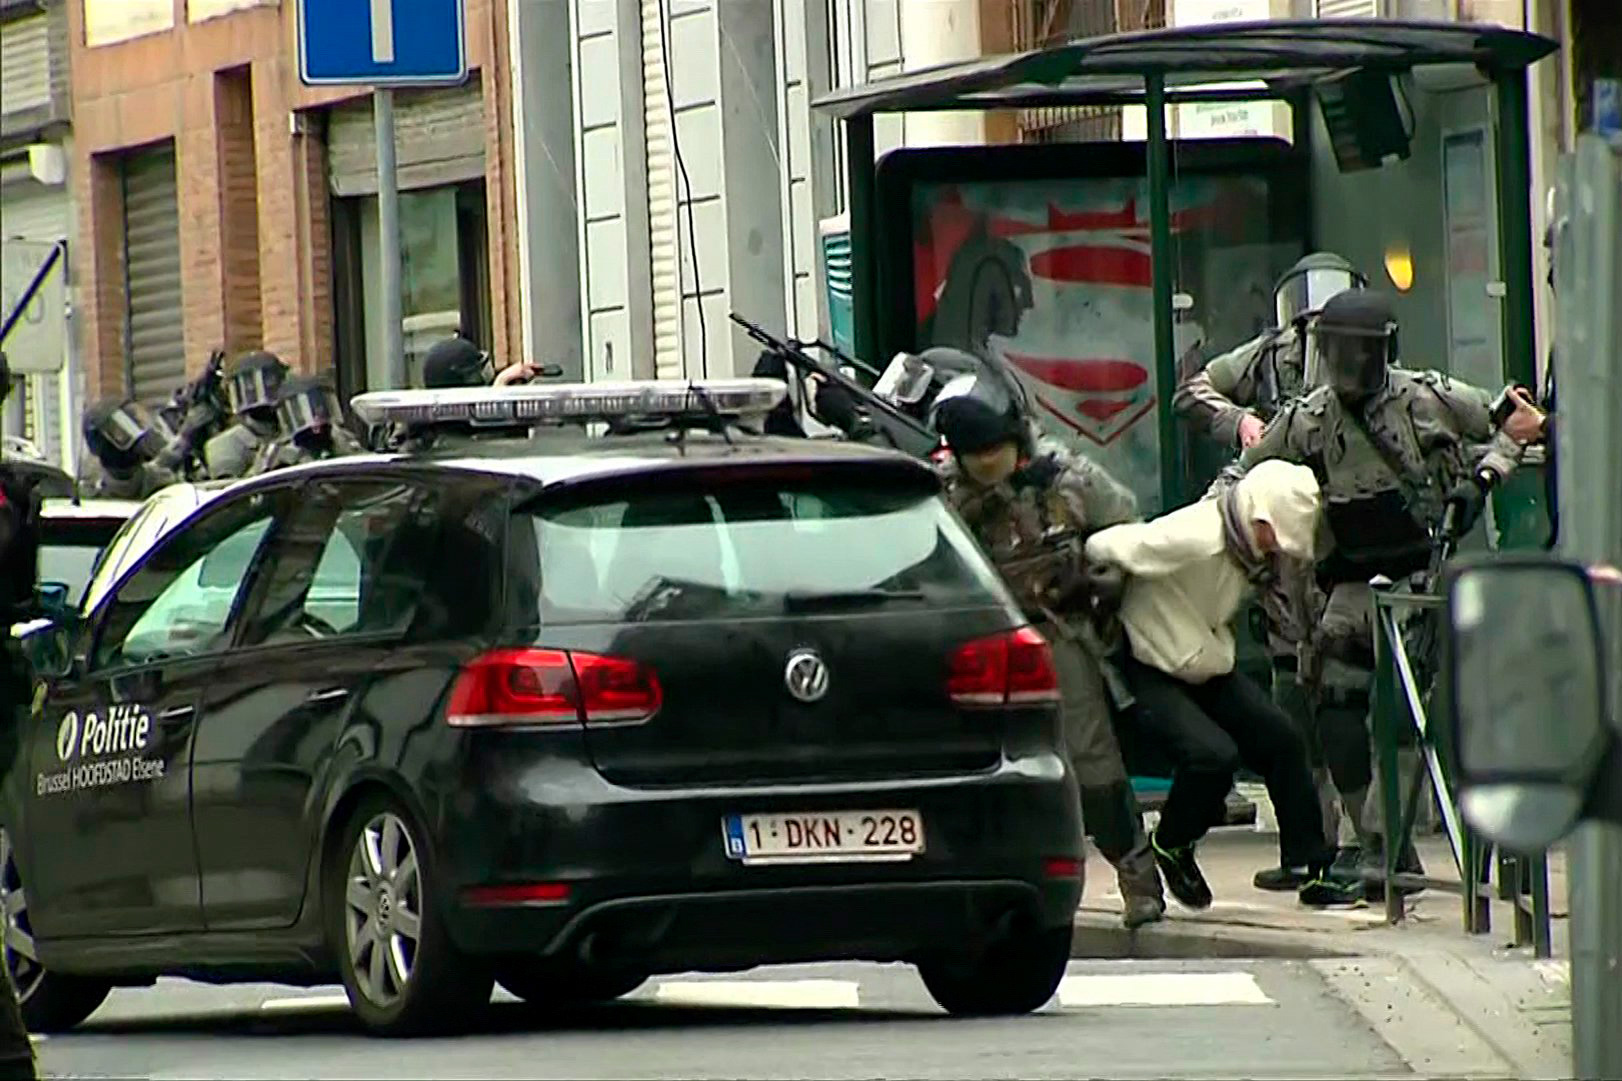 In this still image taken from video footage, armed Belgian police apprehend a suspect later identified as suspected Paris attacker Salah Abdeslam in the Molenbeek neighborhood of Brussels, Belgium, March 18, 2016.